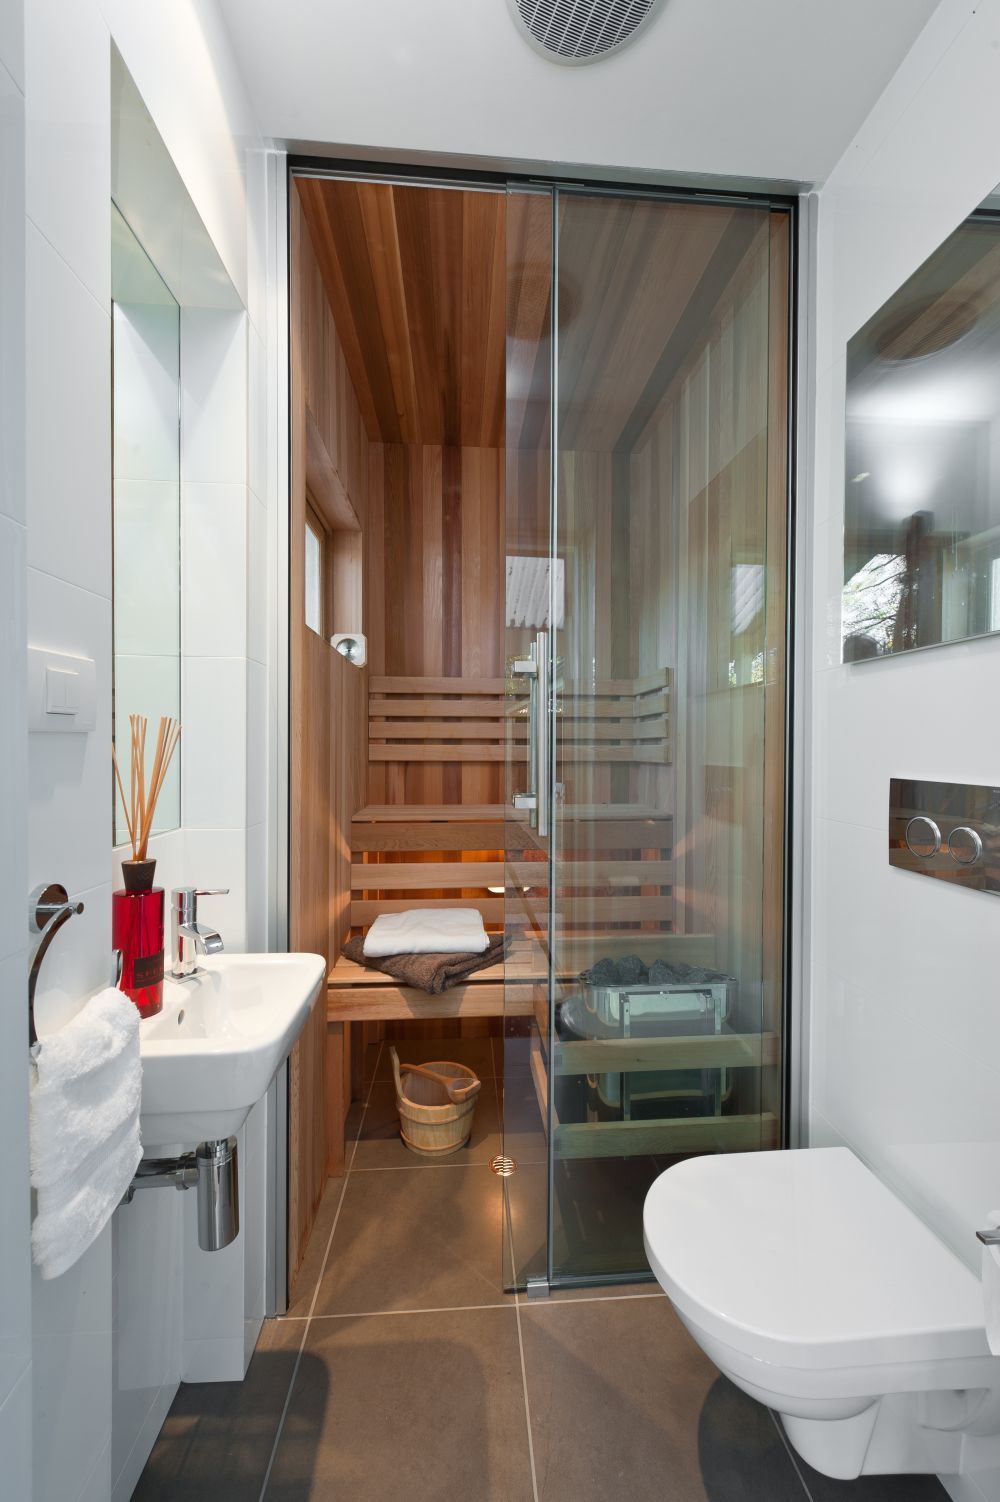 Bathroom Remodel Software This Is What Every Home Needs A Built In Sauna I Found This On A